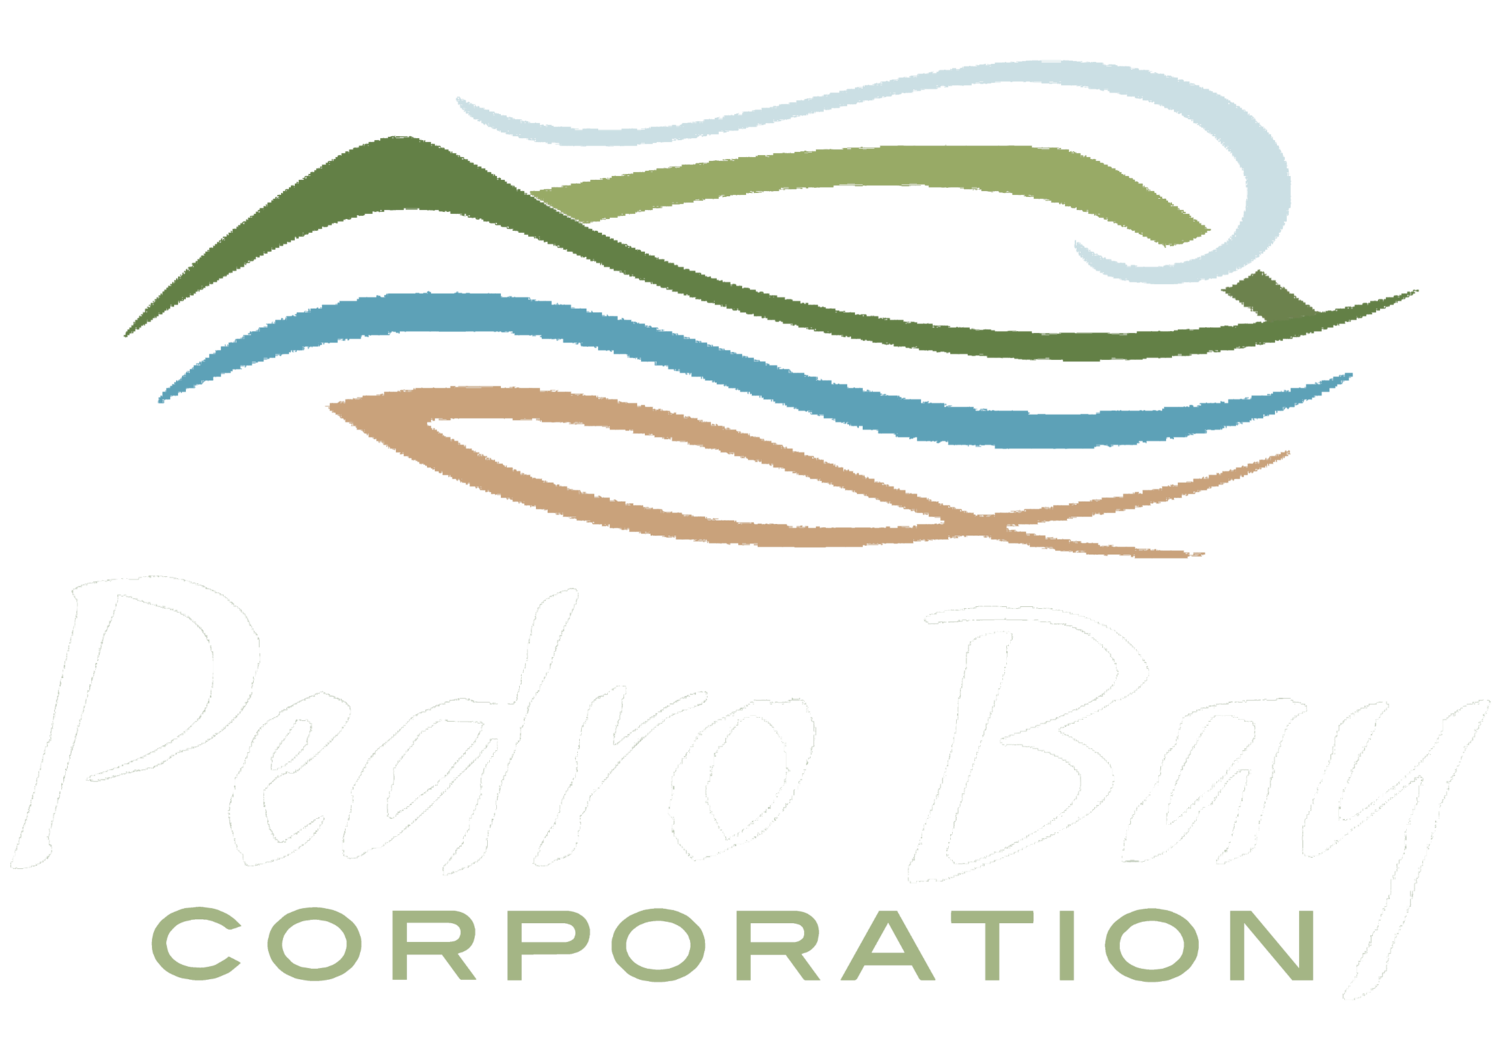 Pedro Bay Corporation